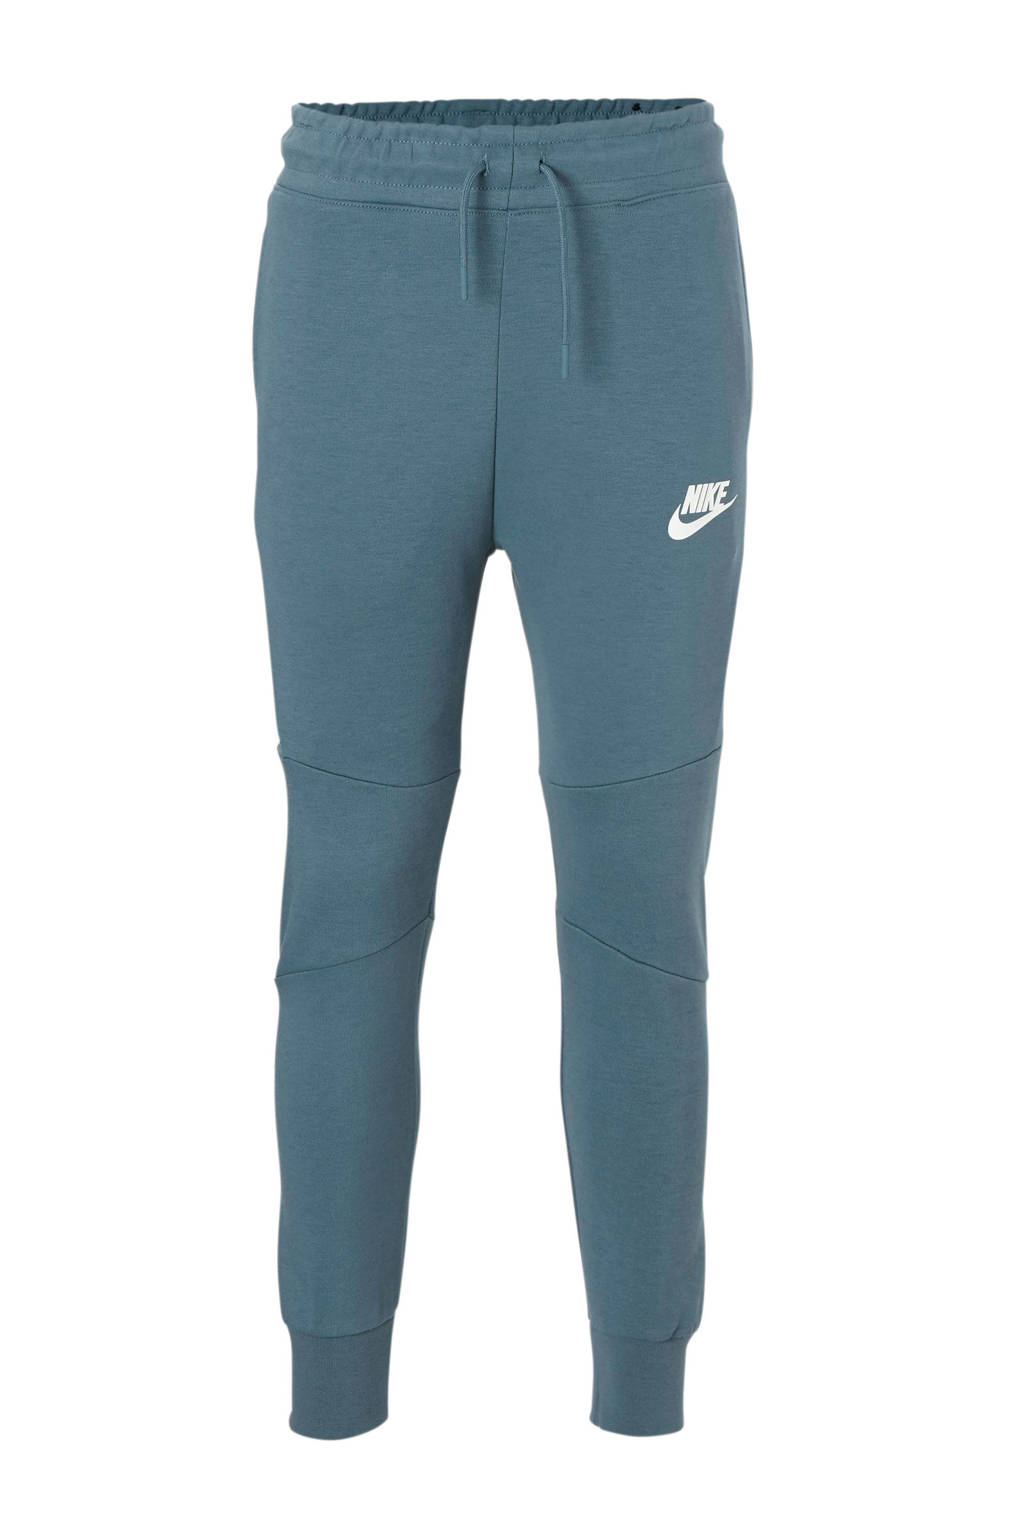 Nike   Tech Fleece joggingbroek, Blauw